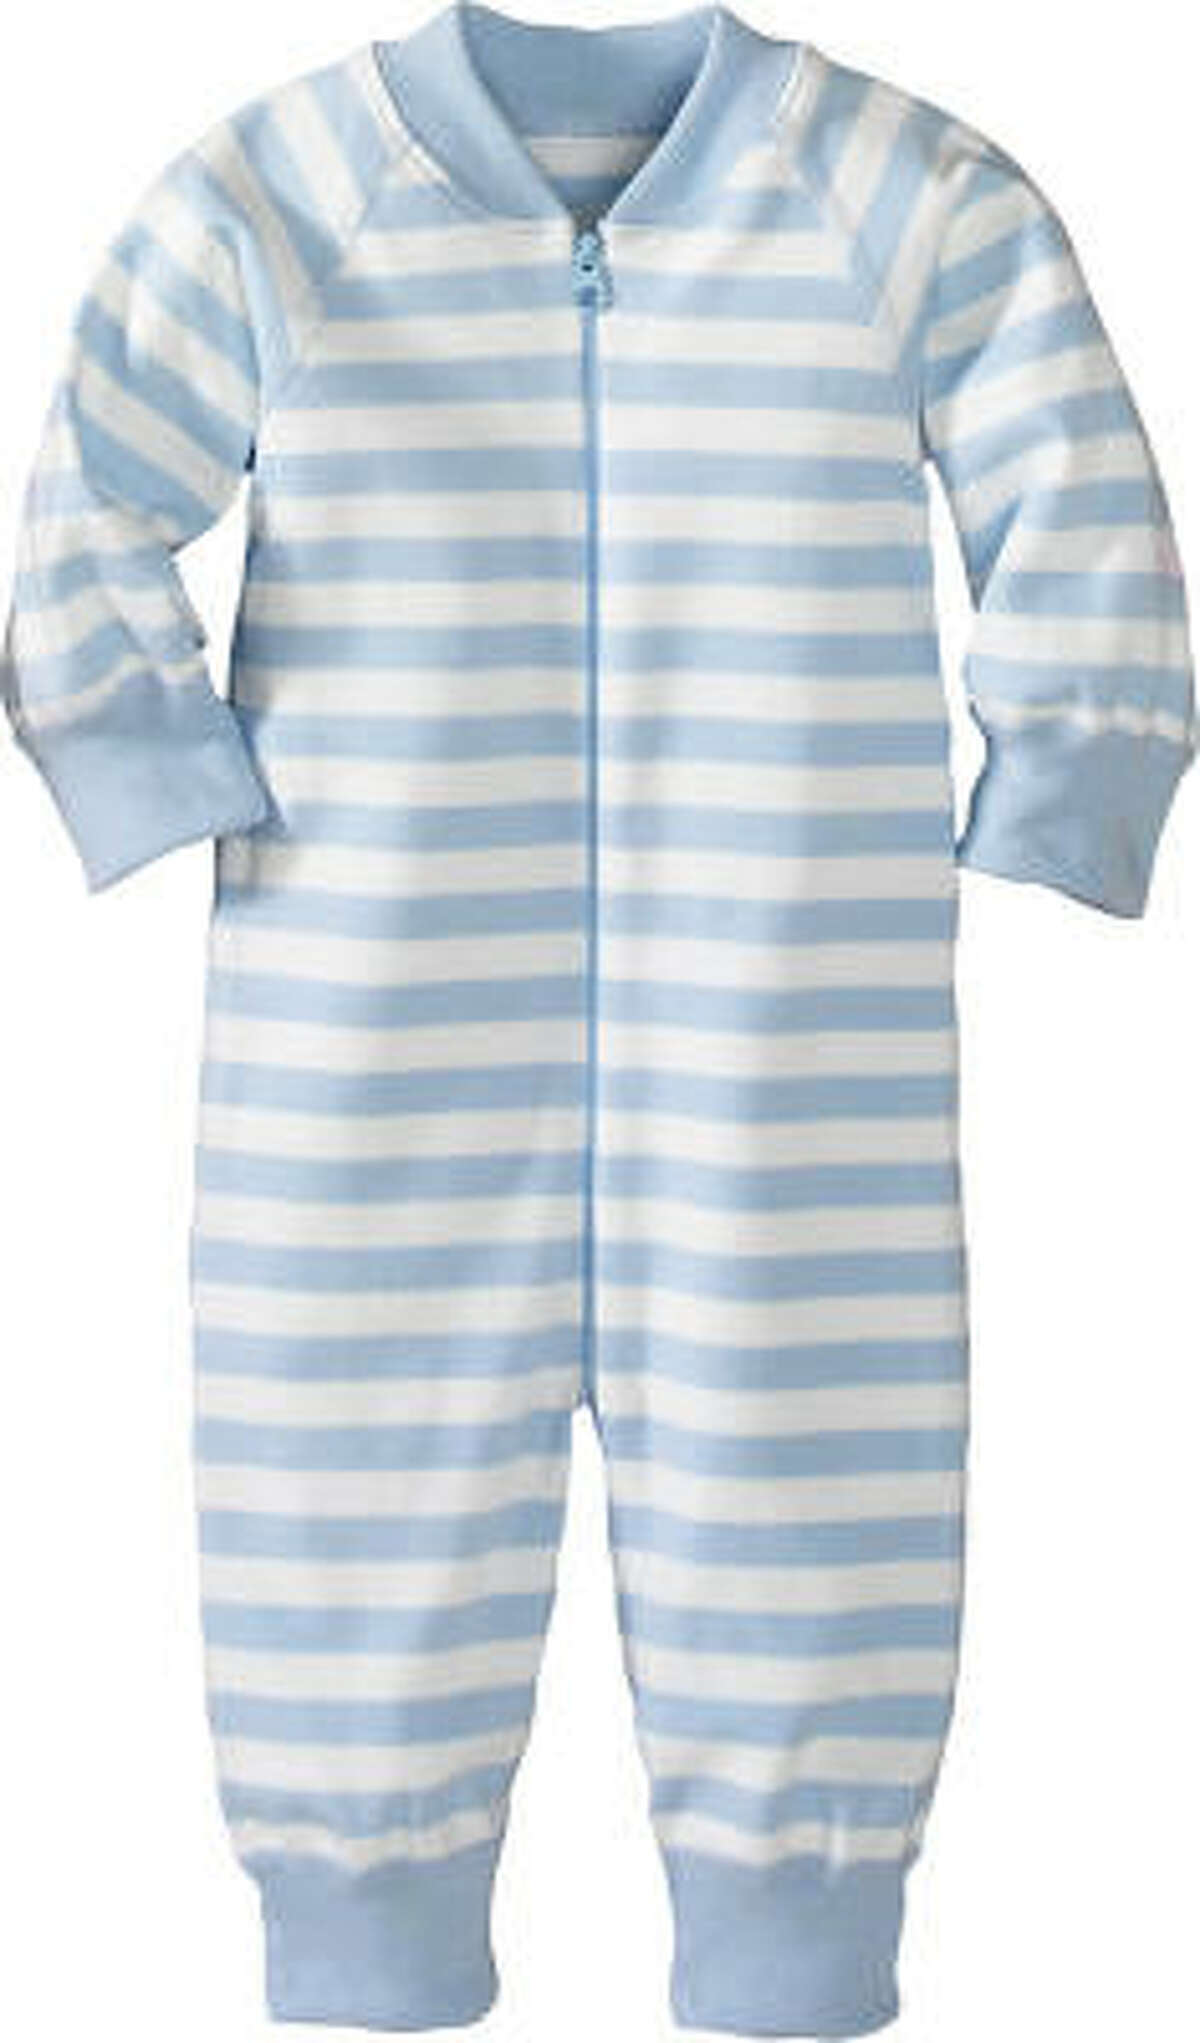 As kids, we were forced to wear this onesie, but as adults we have a choice.